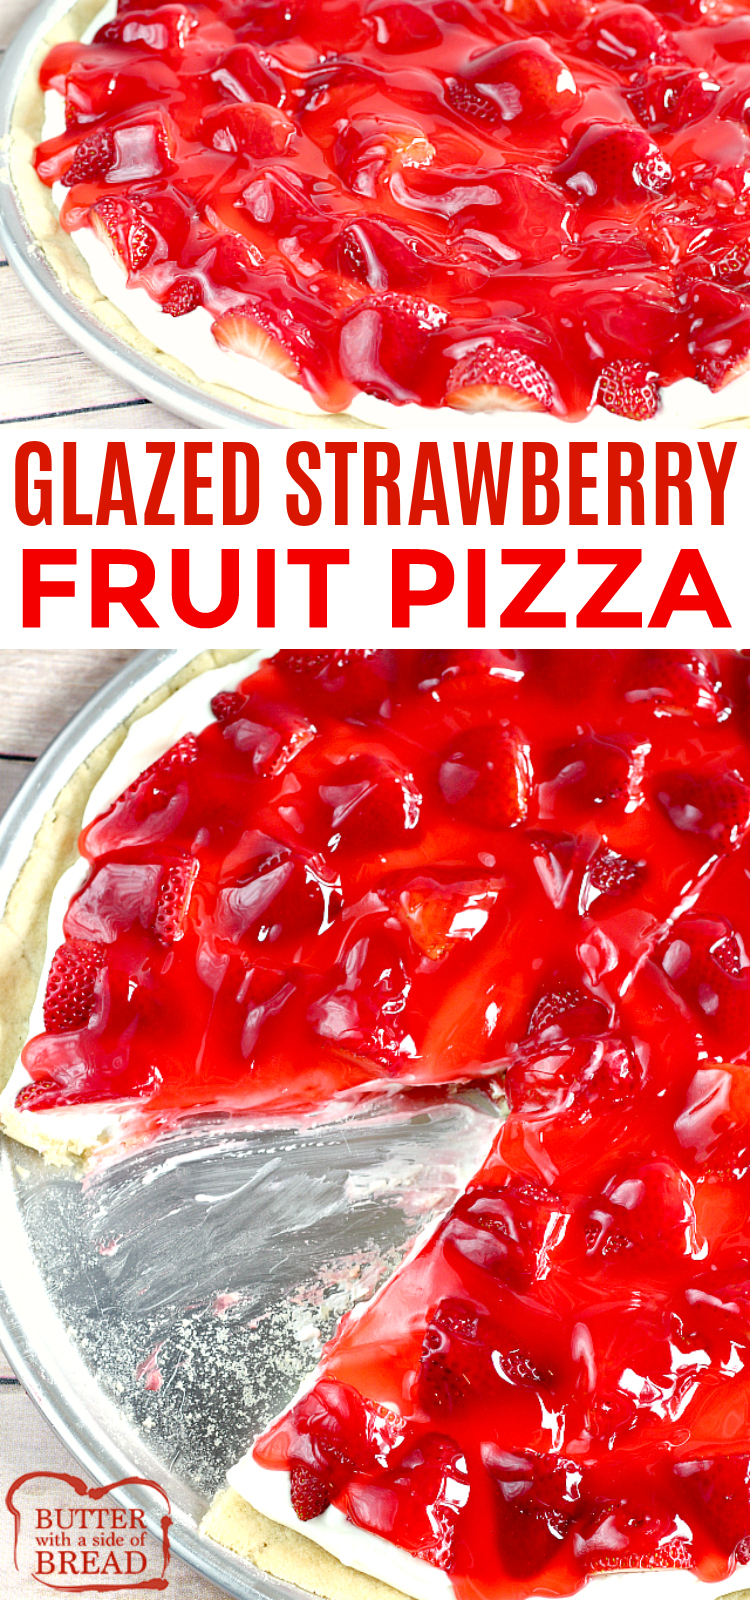 Glazed Strawberry Fruit Pizza is made with a sugar cookie crust that is topped with a cream cheese layer, fresh strawberries and a delicious strawberry glaze! This fruit pizza recipe is so easy to make by using pre-made sugar cookie dough and the glaze is made with strawberry jello and a few other basic ingredients.